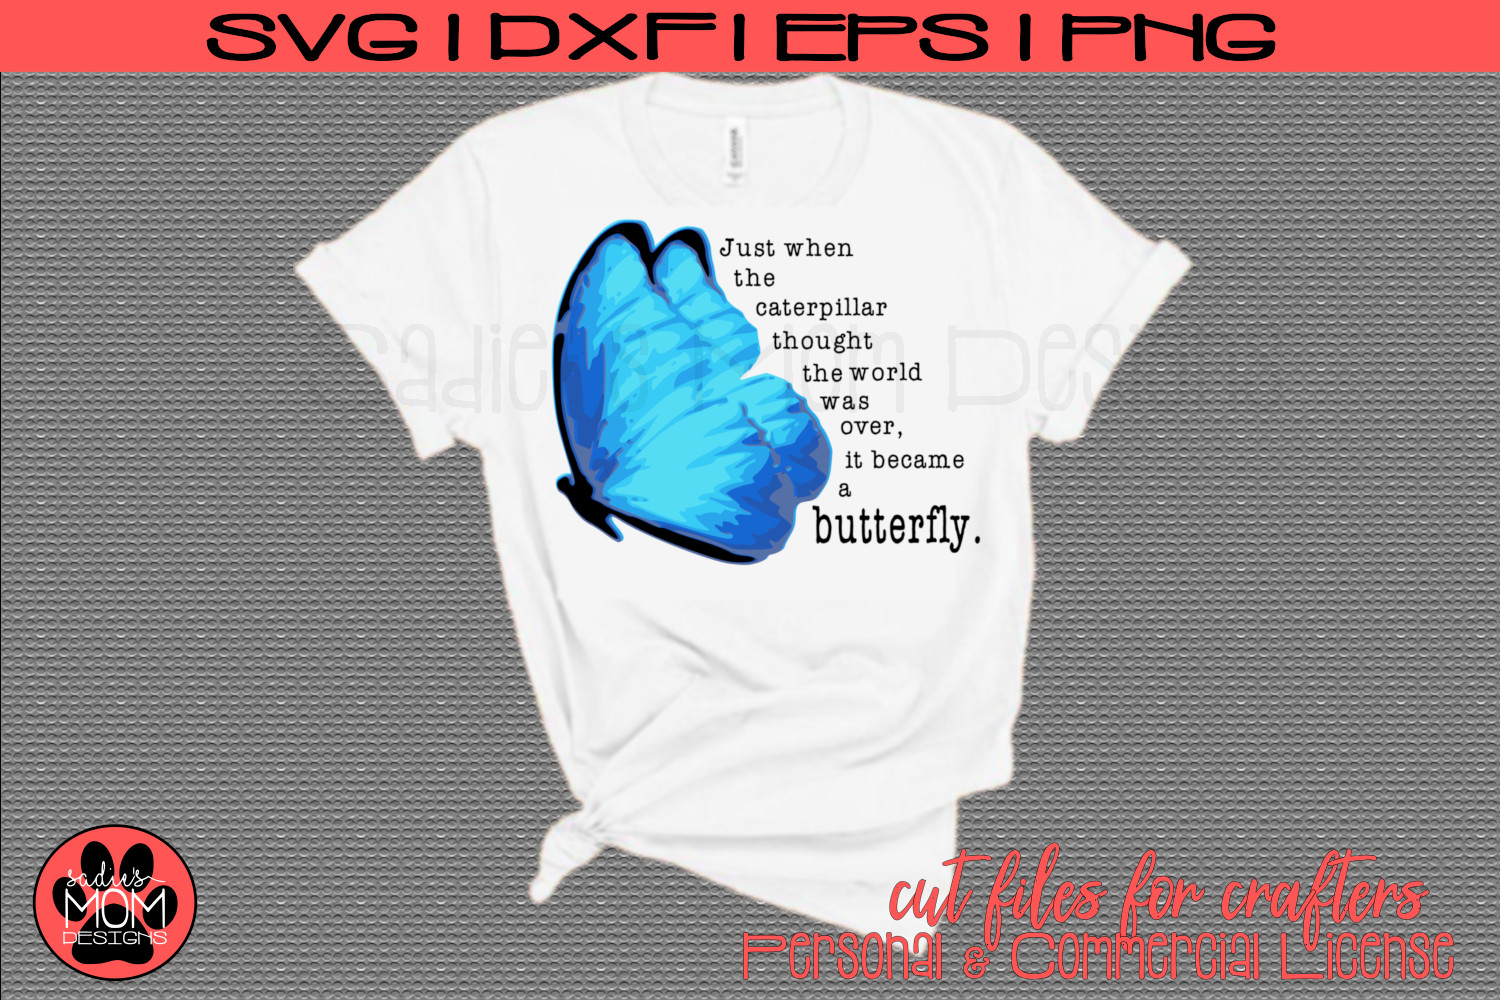 Butterfly Saying - Just When the Caterpillar | SVG Cut File example image 2